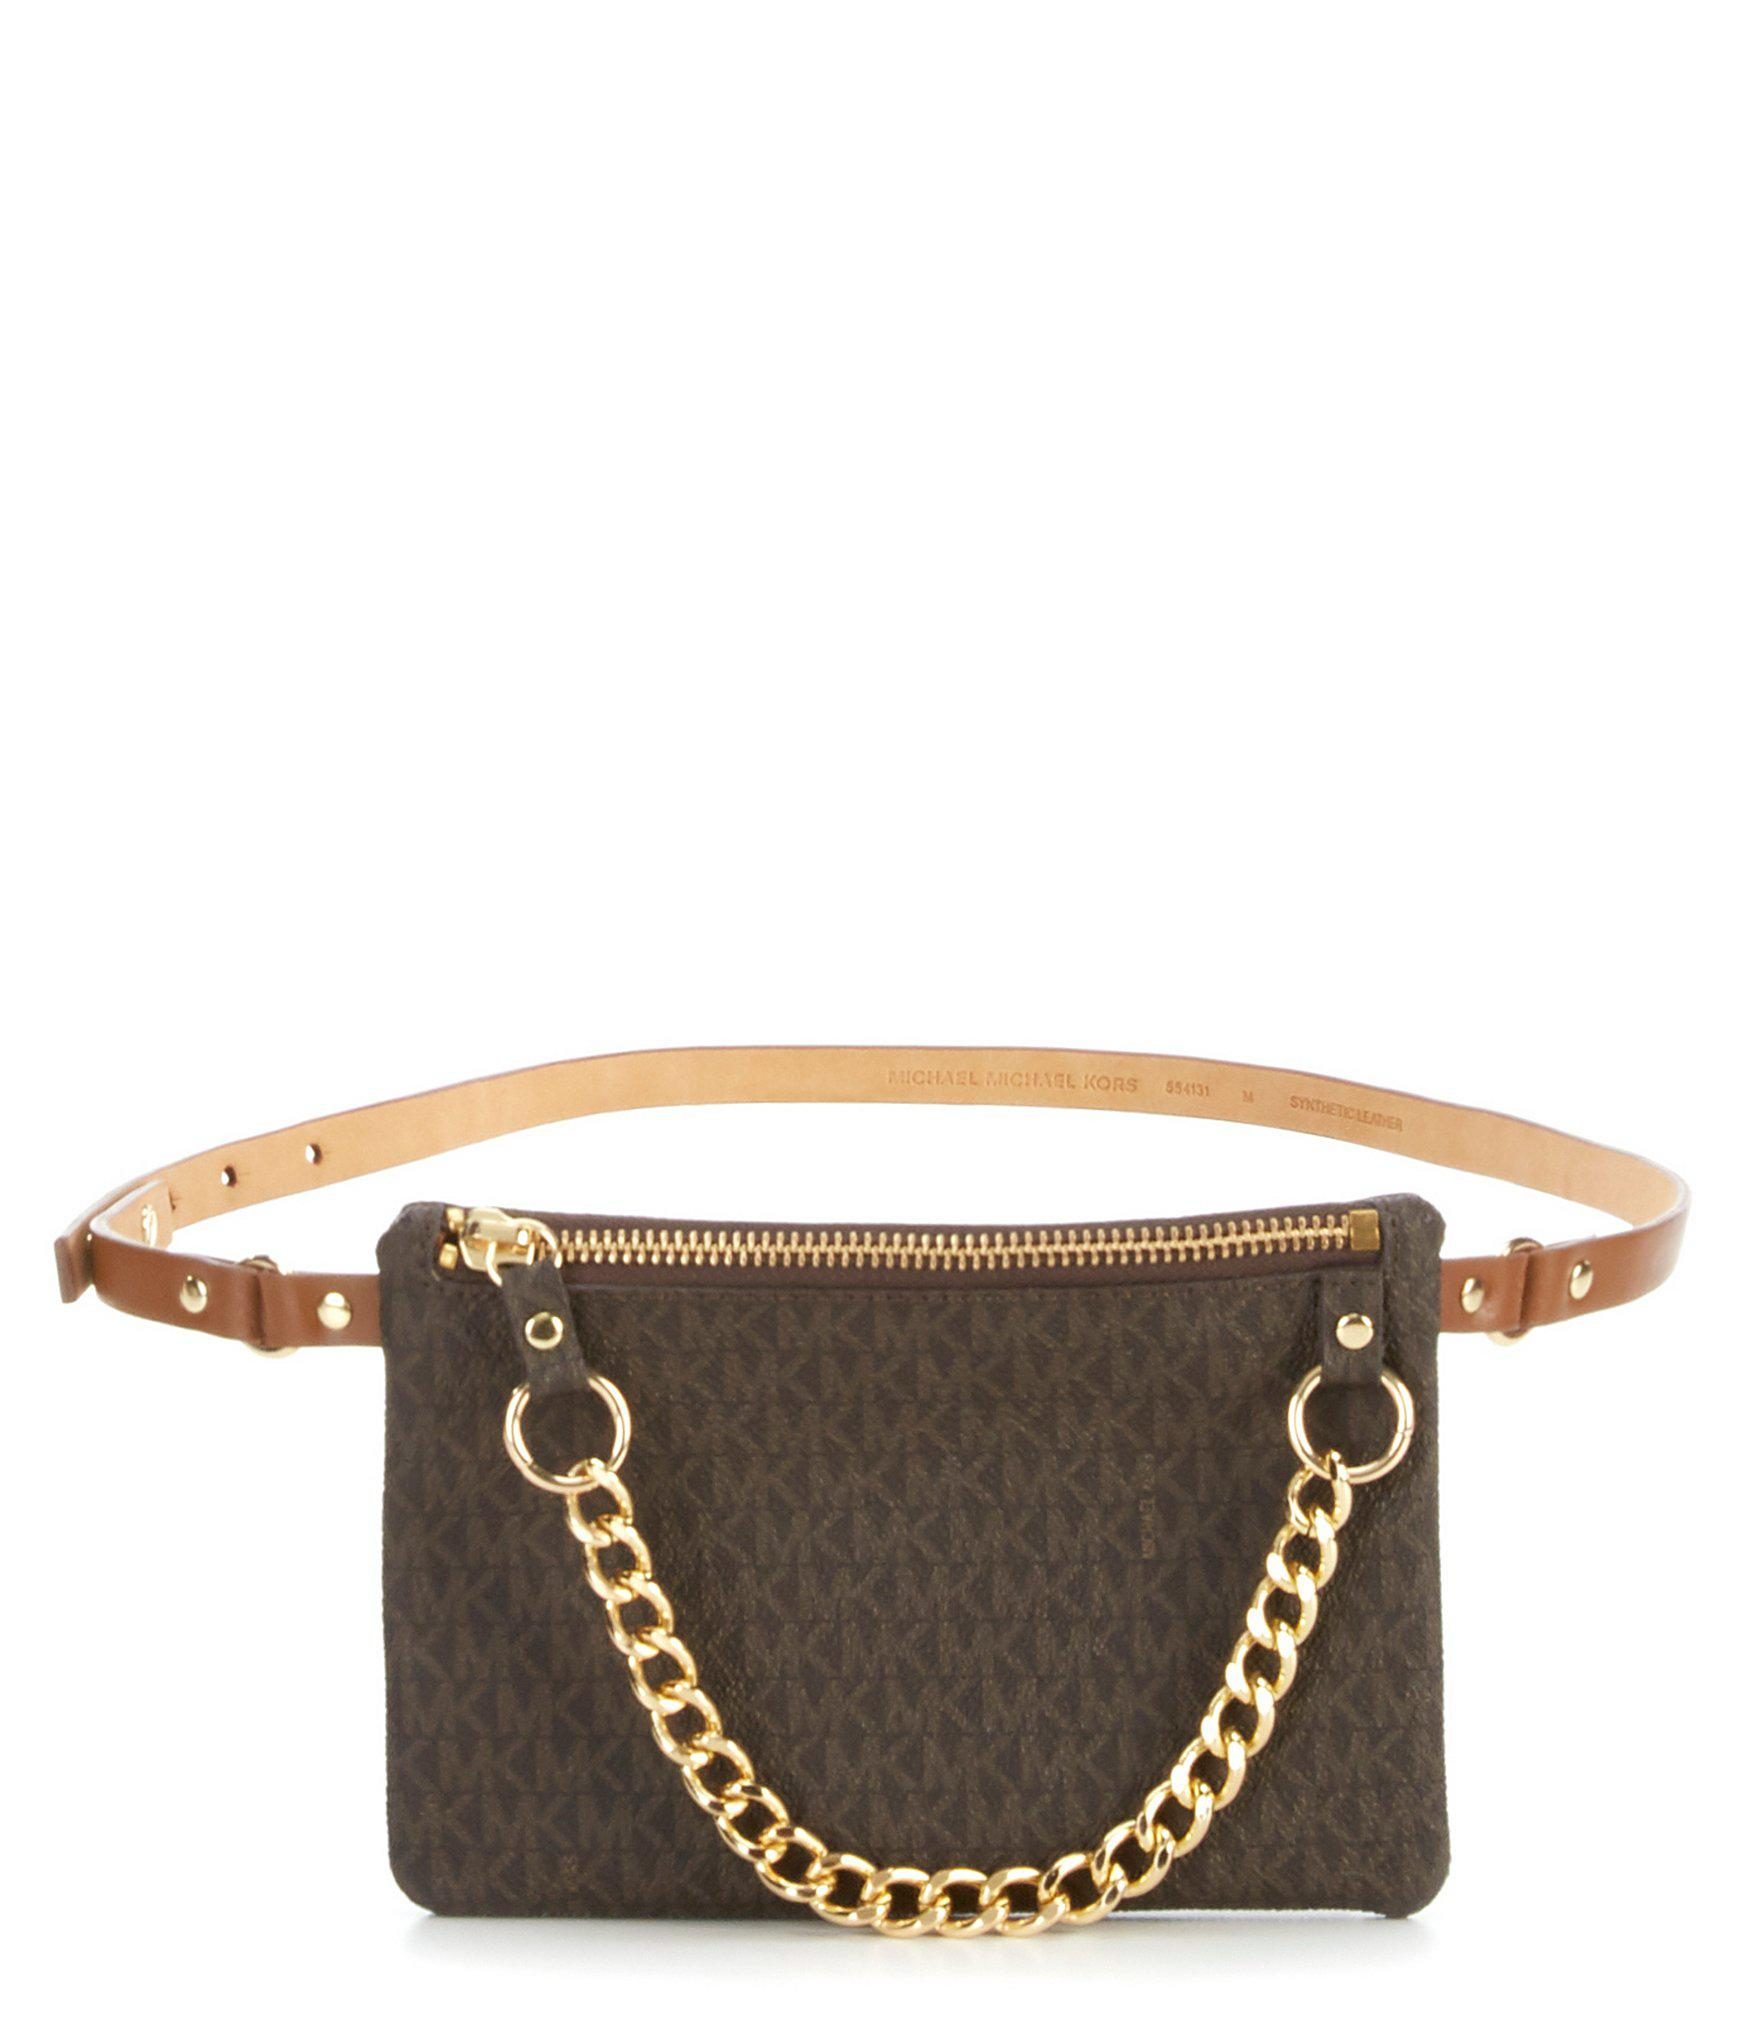 9009daa076fe2 Michael Kors - Brown Belt Bag With Pull Chain - Lyst. View fullscreen